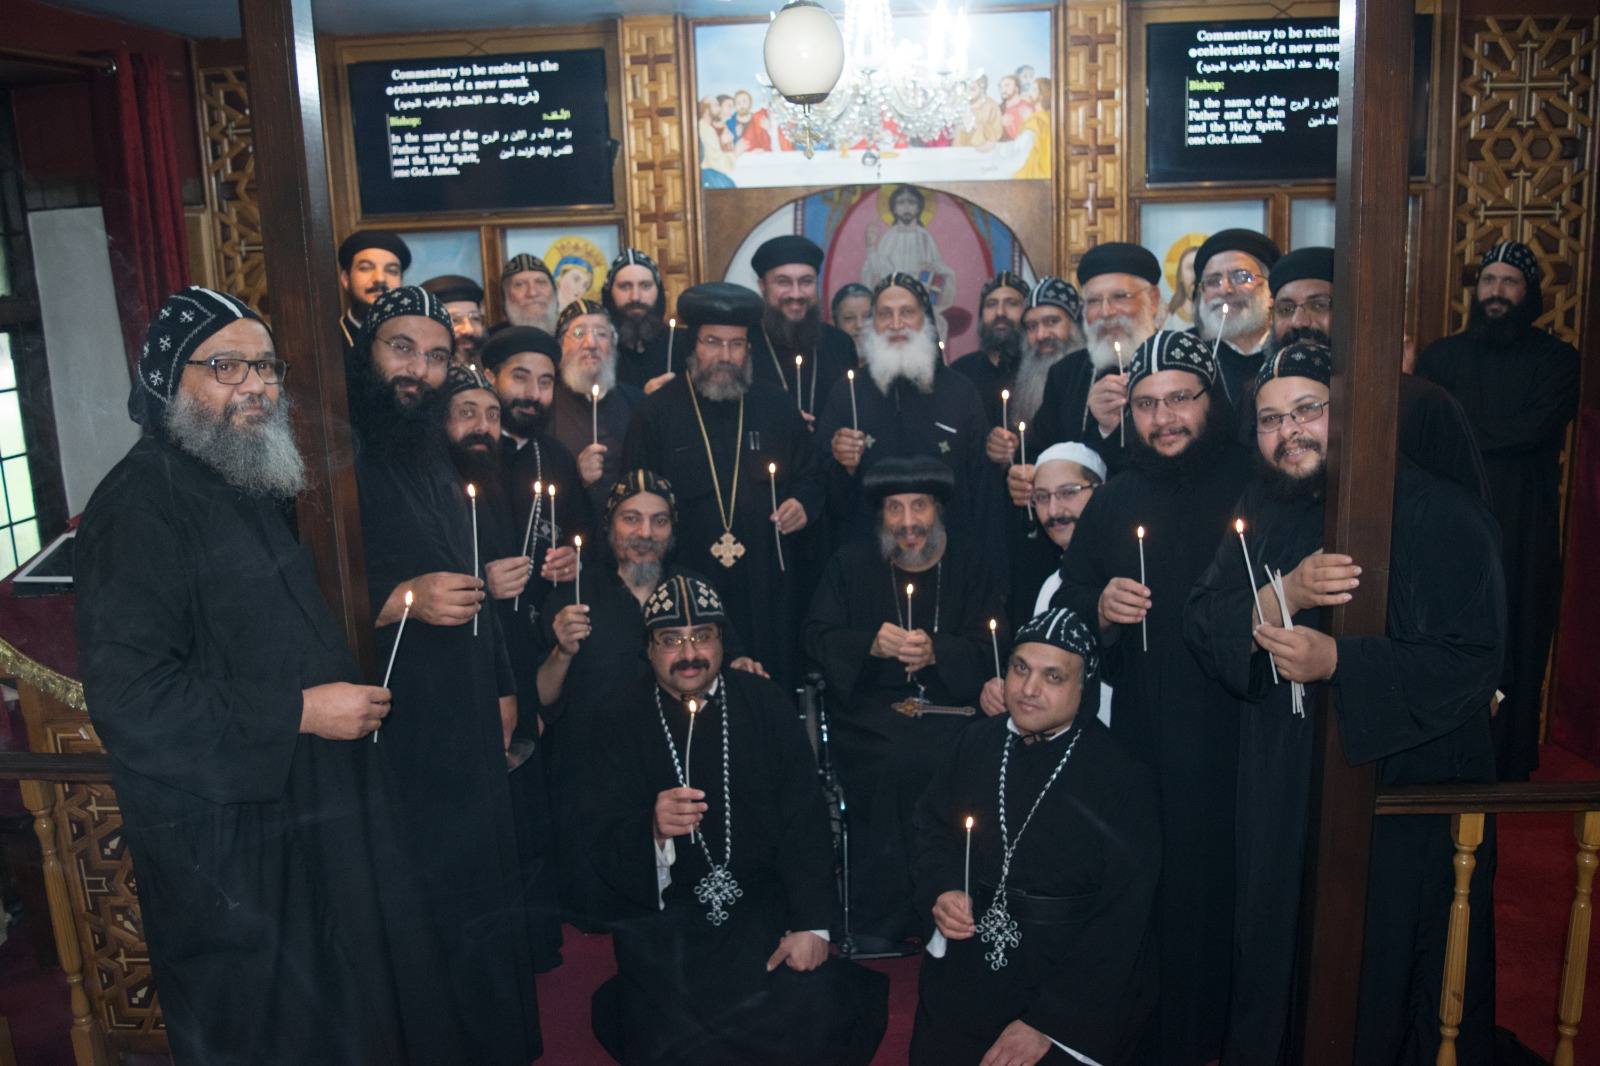 The-ordination-of-two-monks-at-St-Athanasius-Monastery06